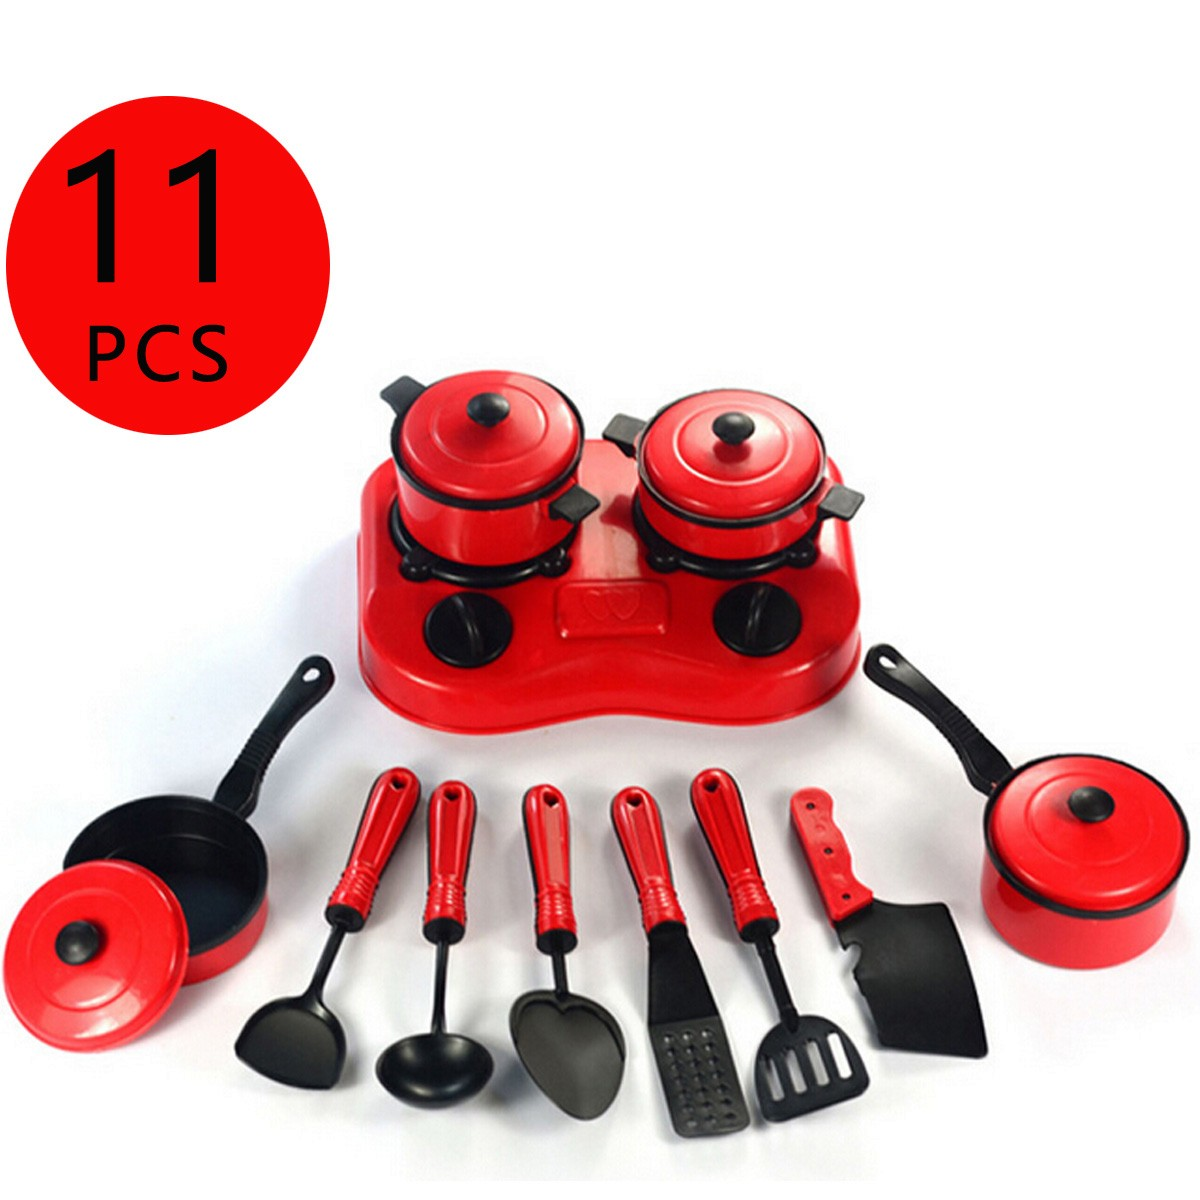 Cooking Toys For Boys : Pcs kitchen food cooking role play pretend toy cookware